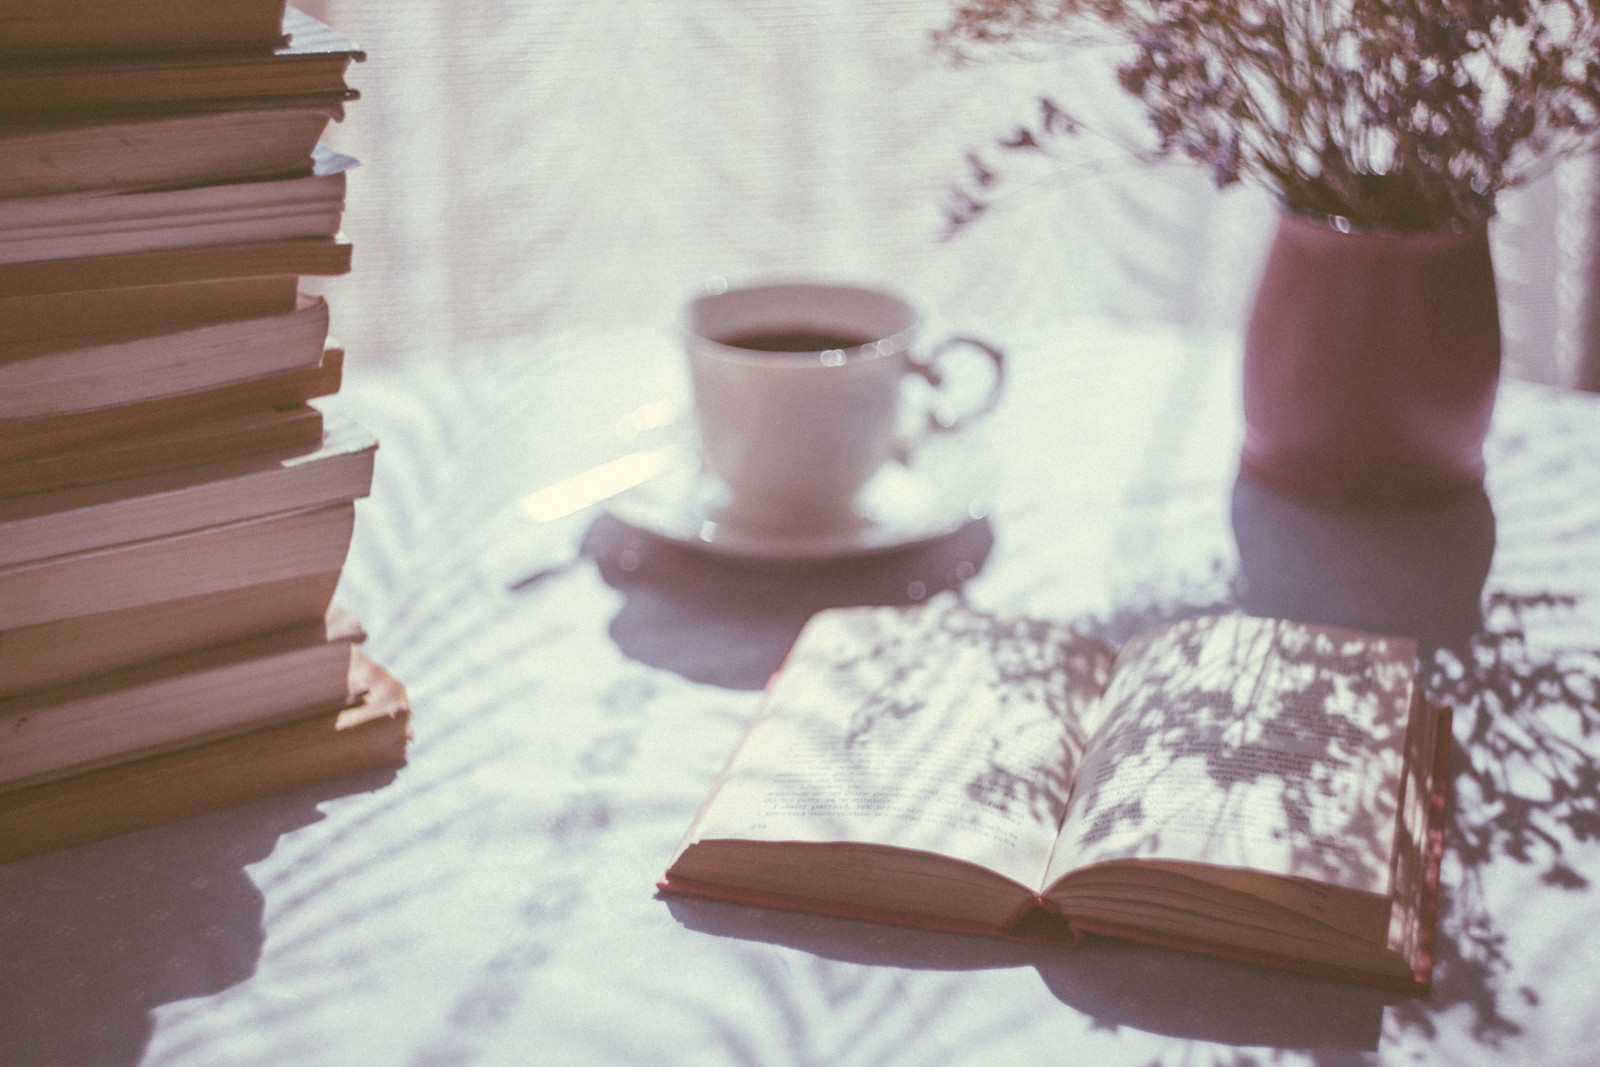 A stack of books, an open book, a mug of coffee, and a vase of flowers